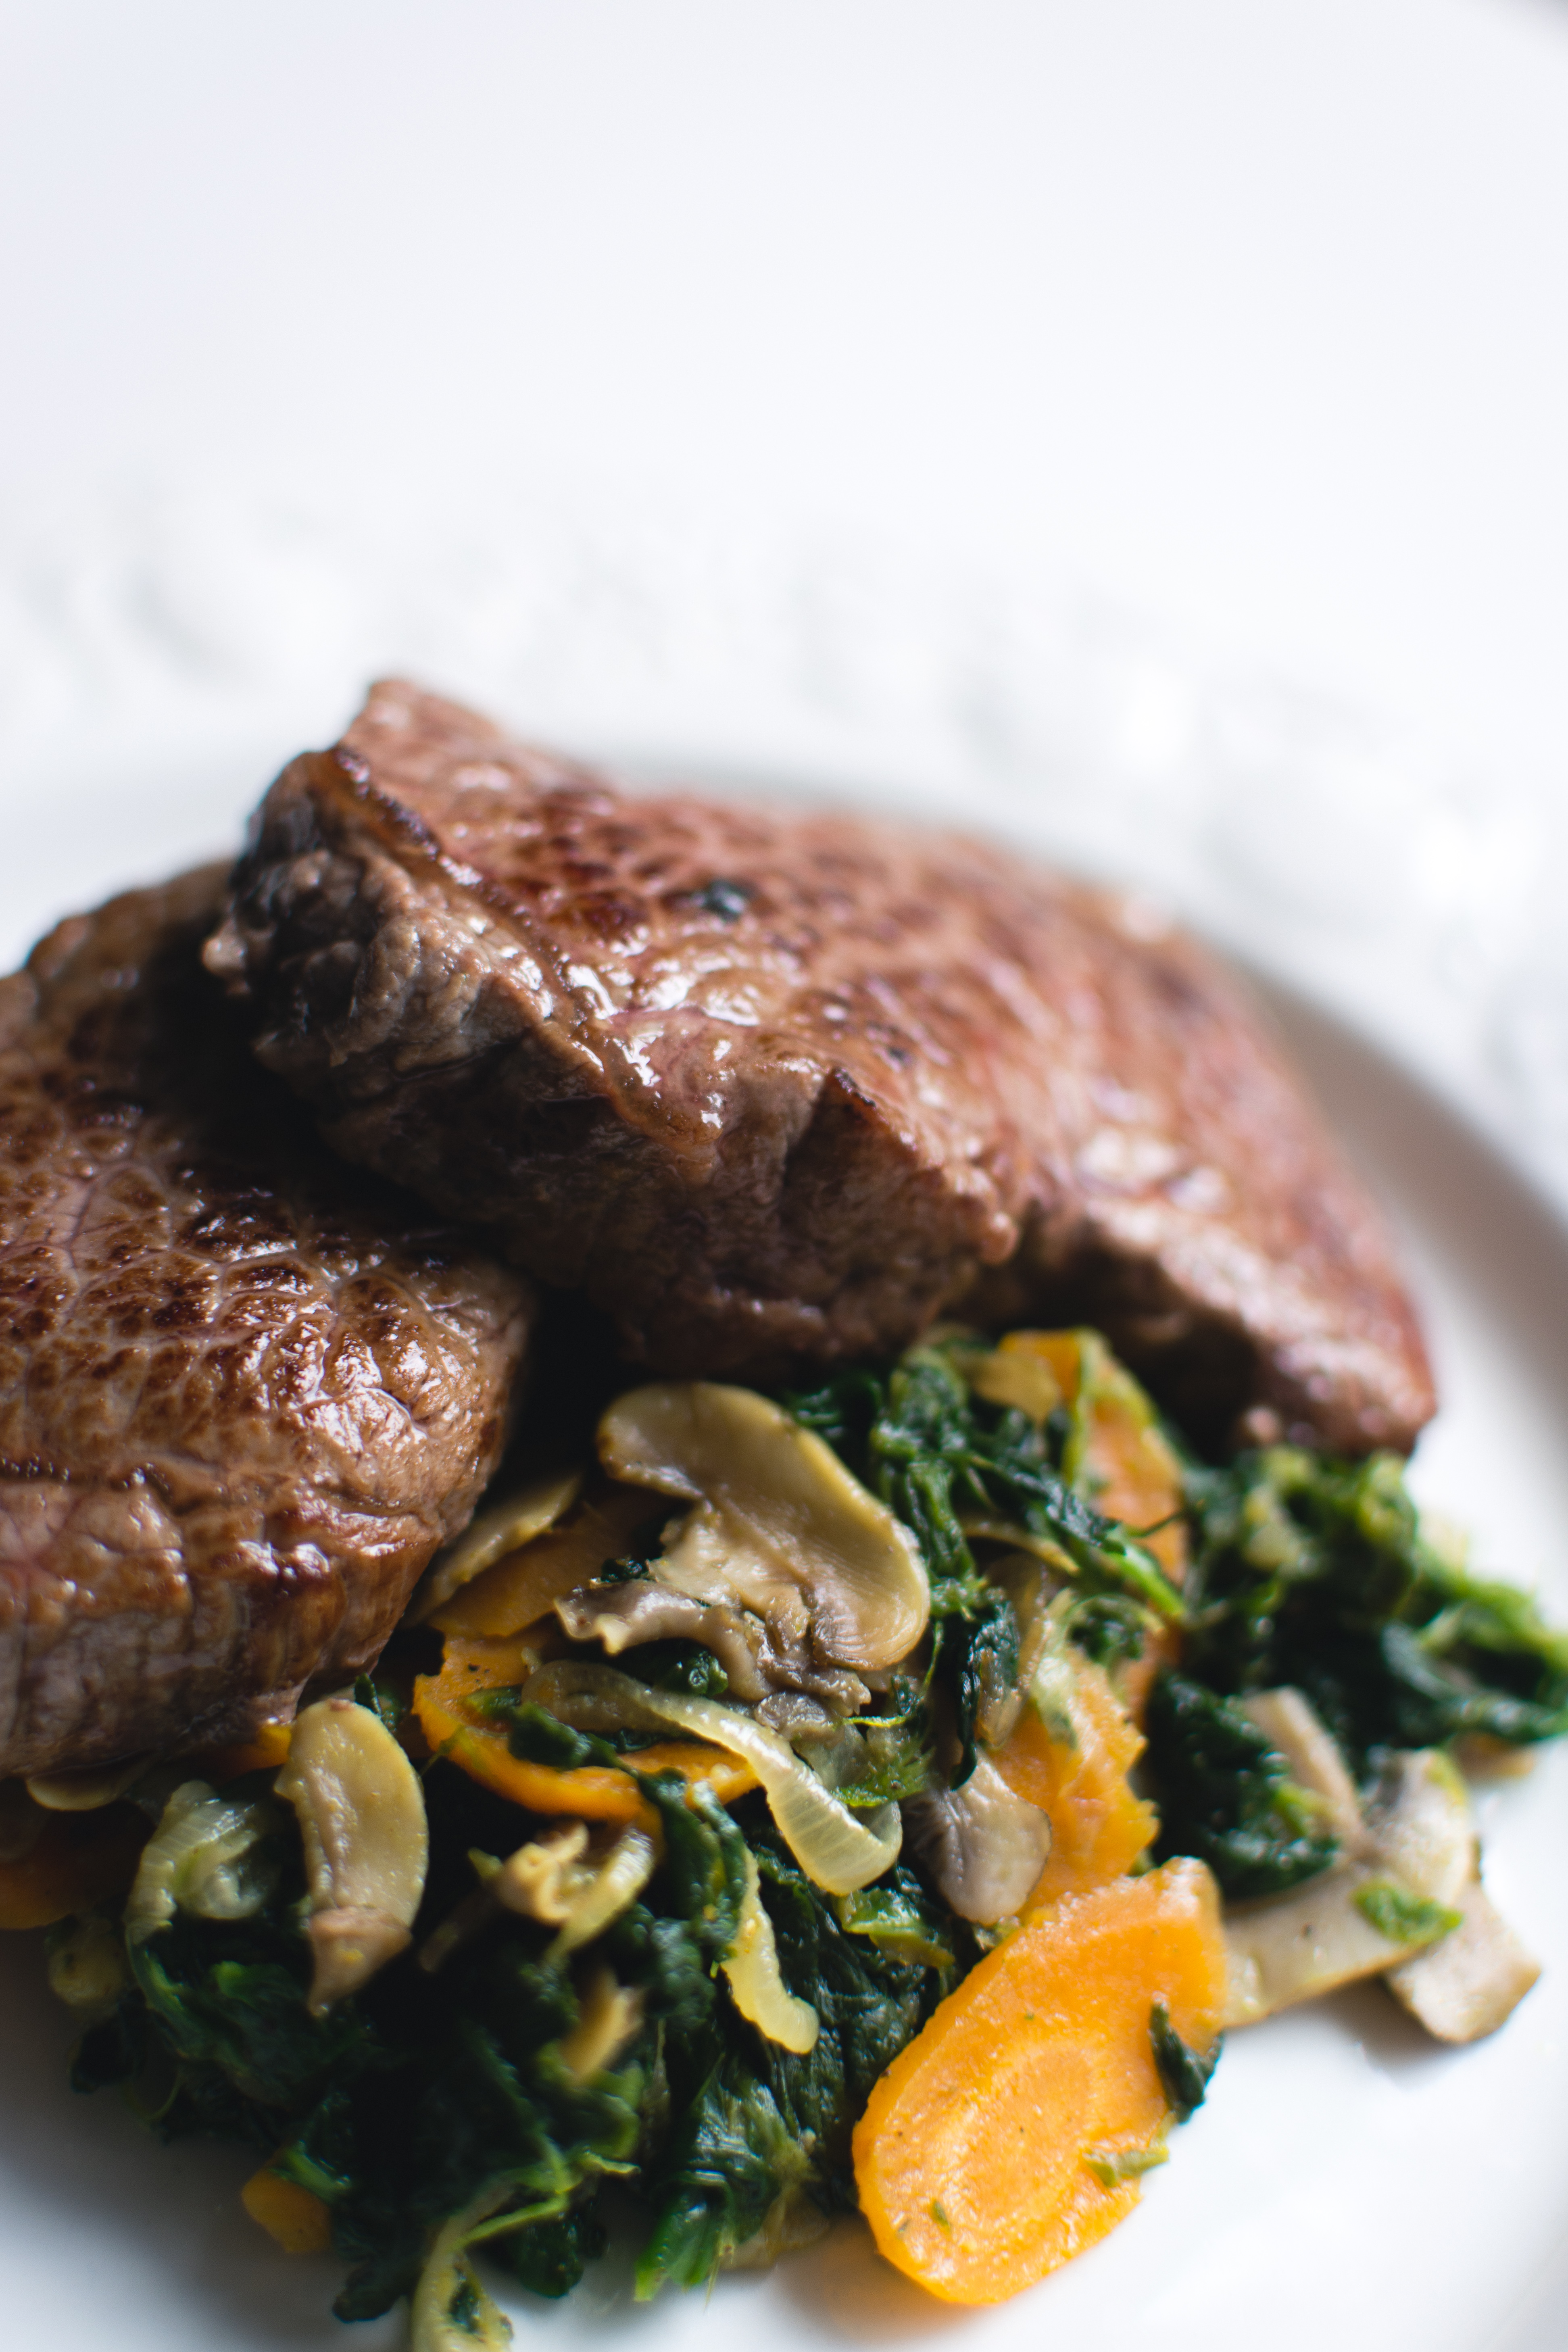 Excellent beef steak with vegetables